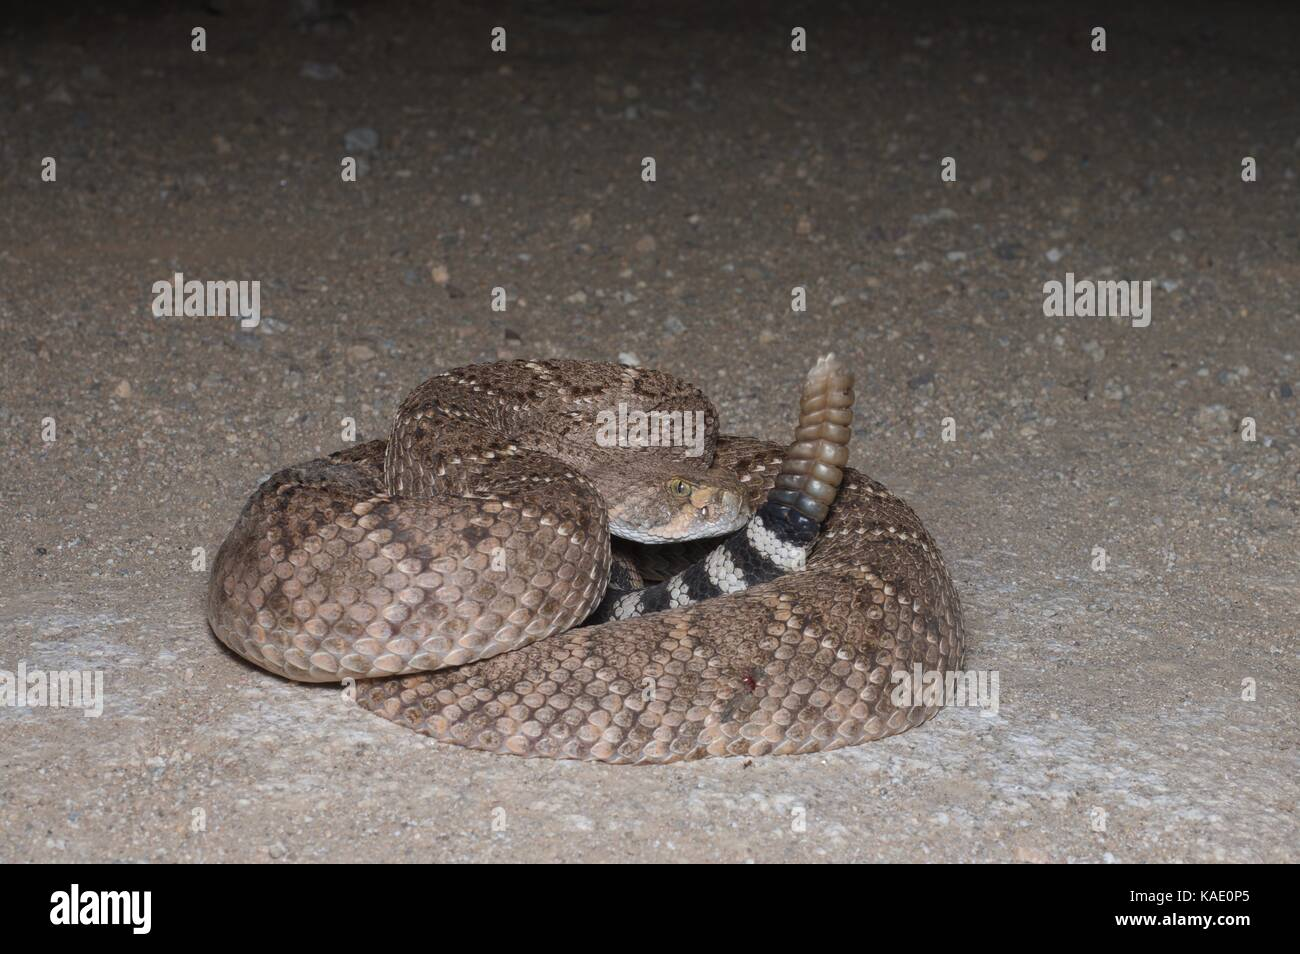 A Western Diamond-backed Rattlesnake (Crotalus atrox) coiled on a dirt road at night in southern Arizona, USA Stock Photo